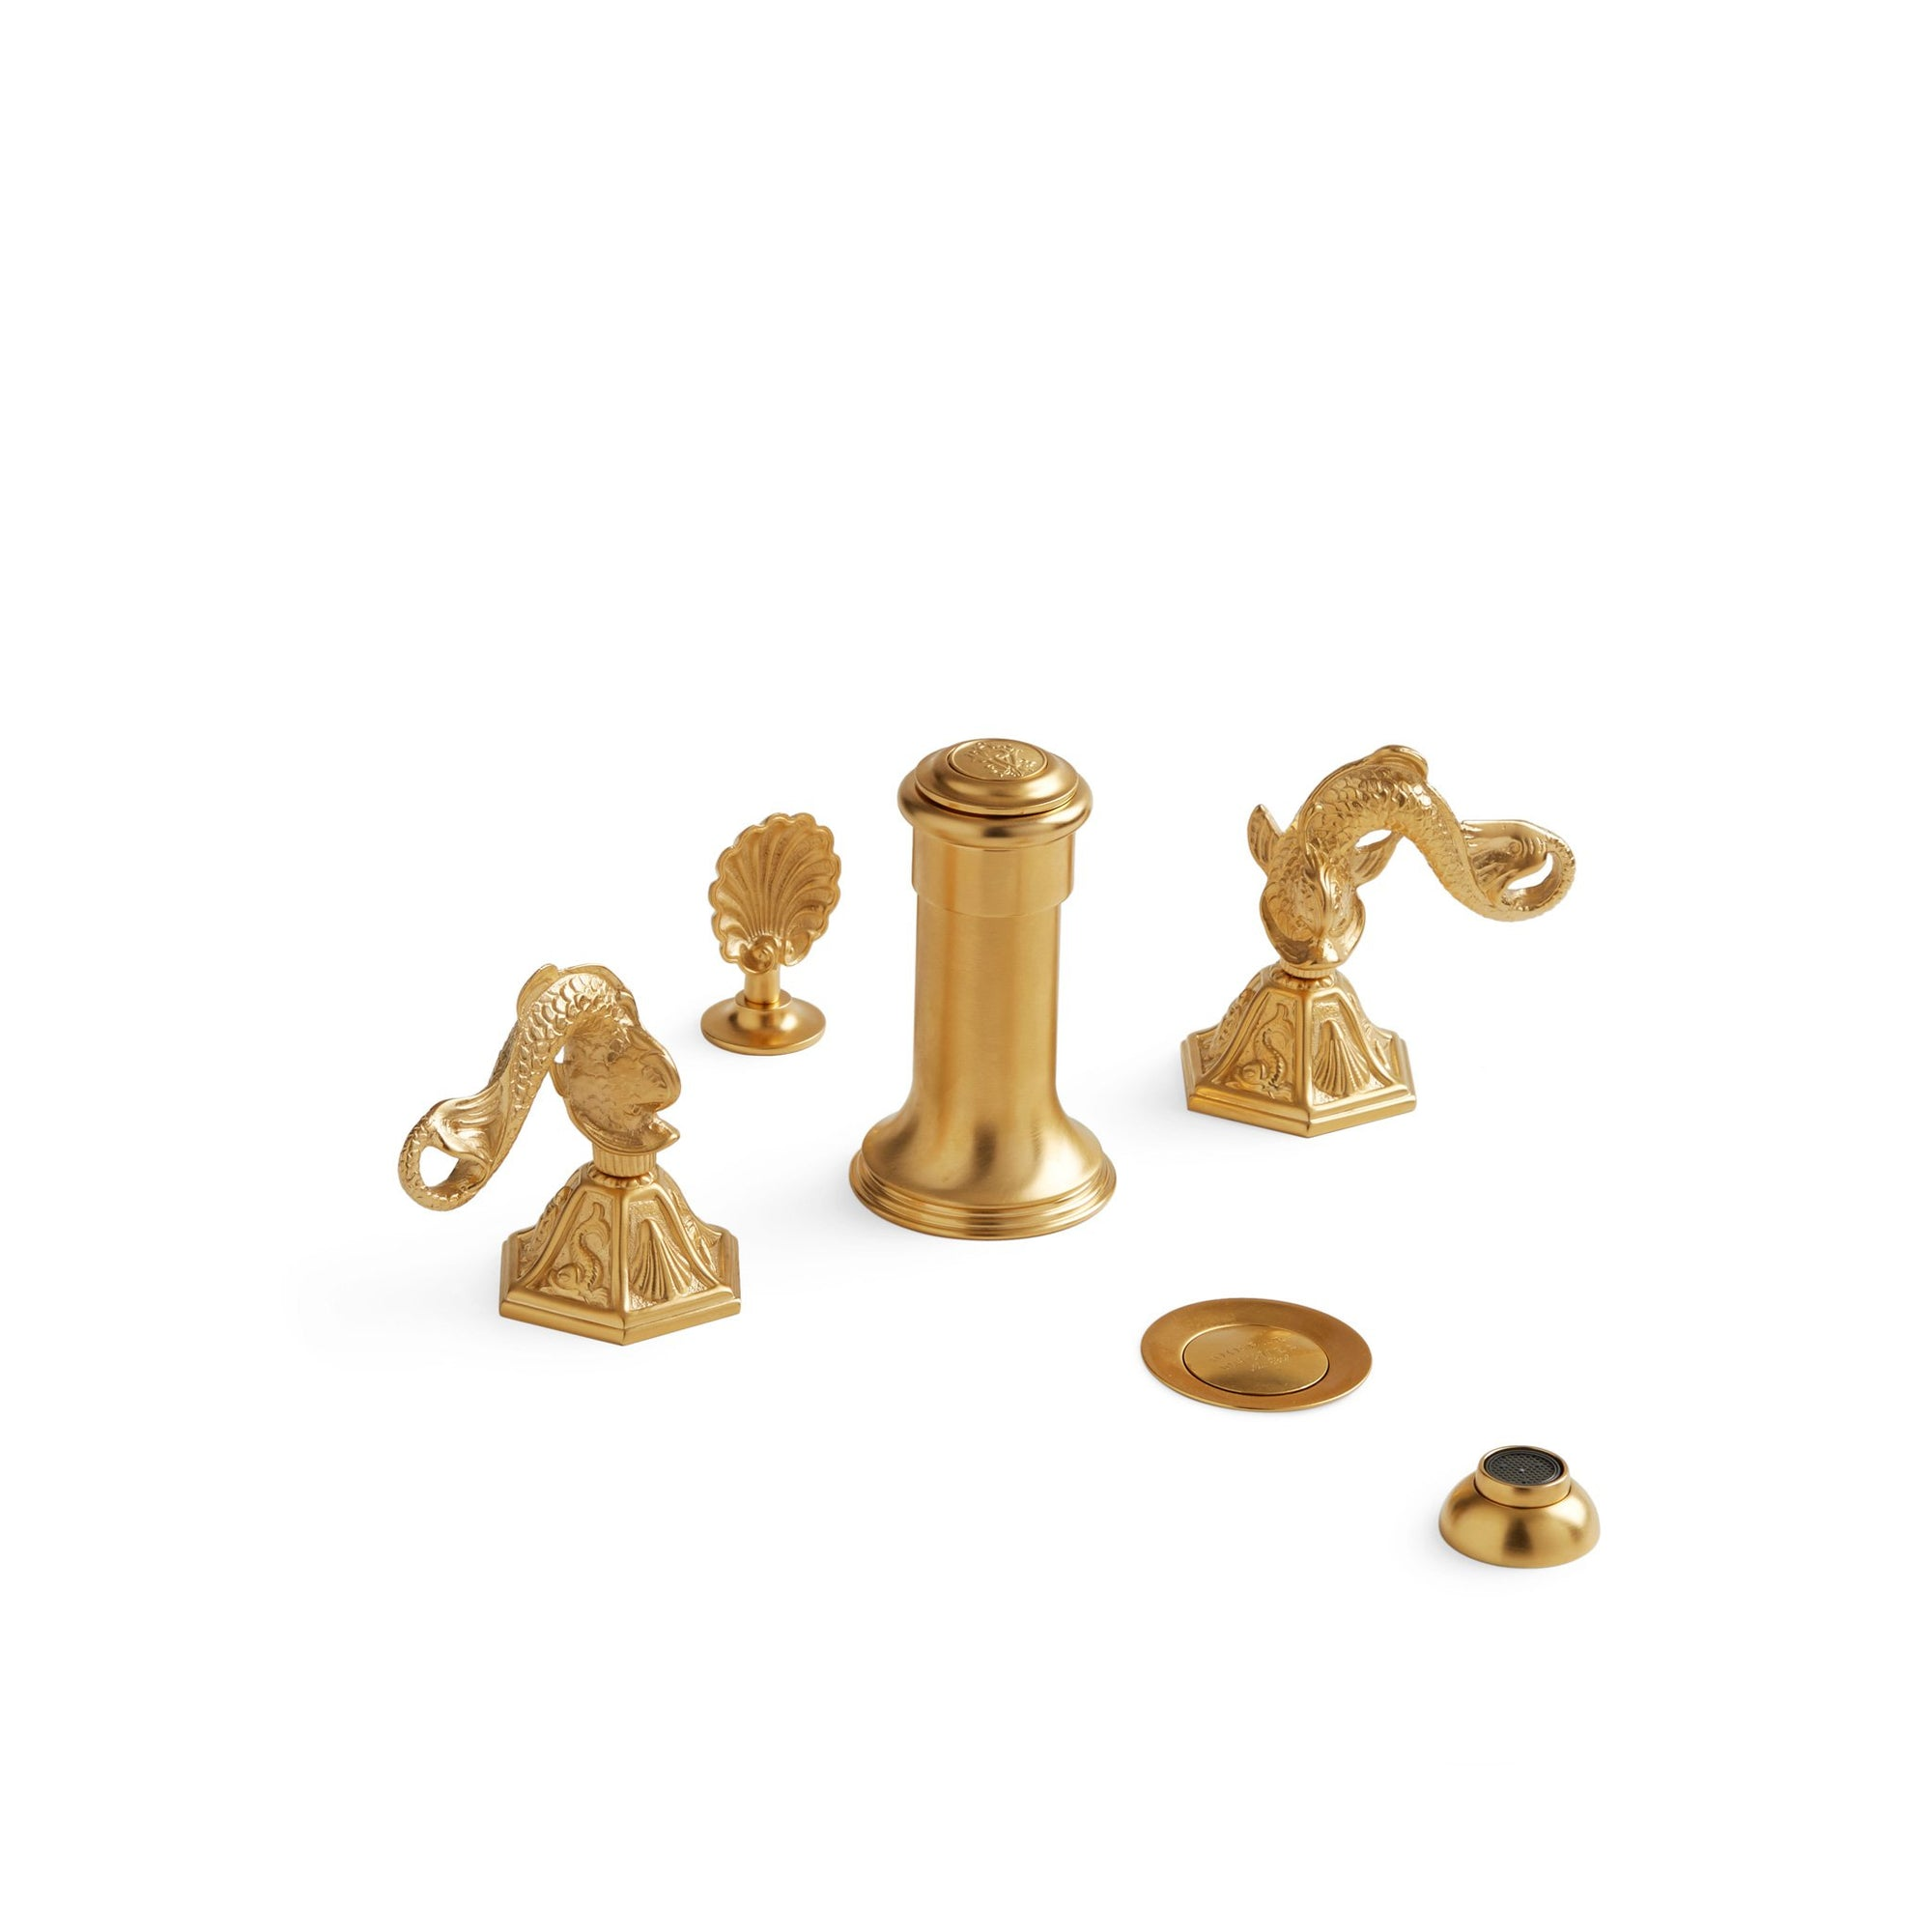 0907BDT-4H-GP Sherle Wagner International Dolphin Lever Bidet Set in Gold Plate metal finish